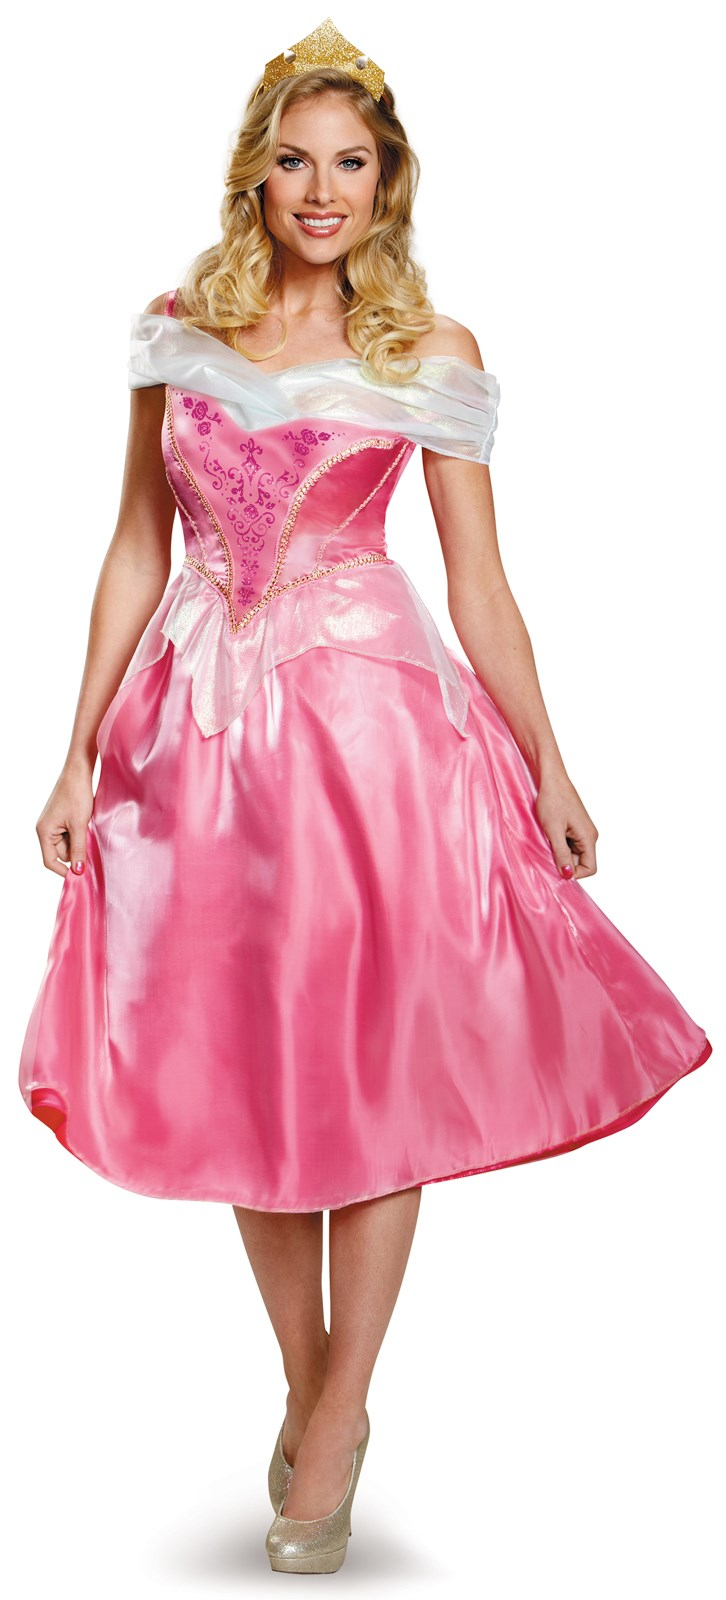 Disney princess gowns for adults - Disney Princess Womens Deluxe Aurora Costume